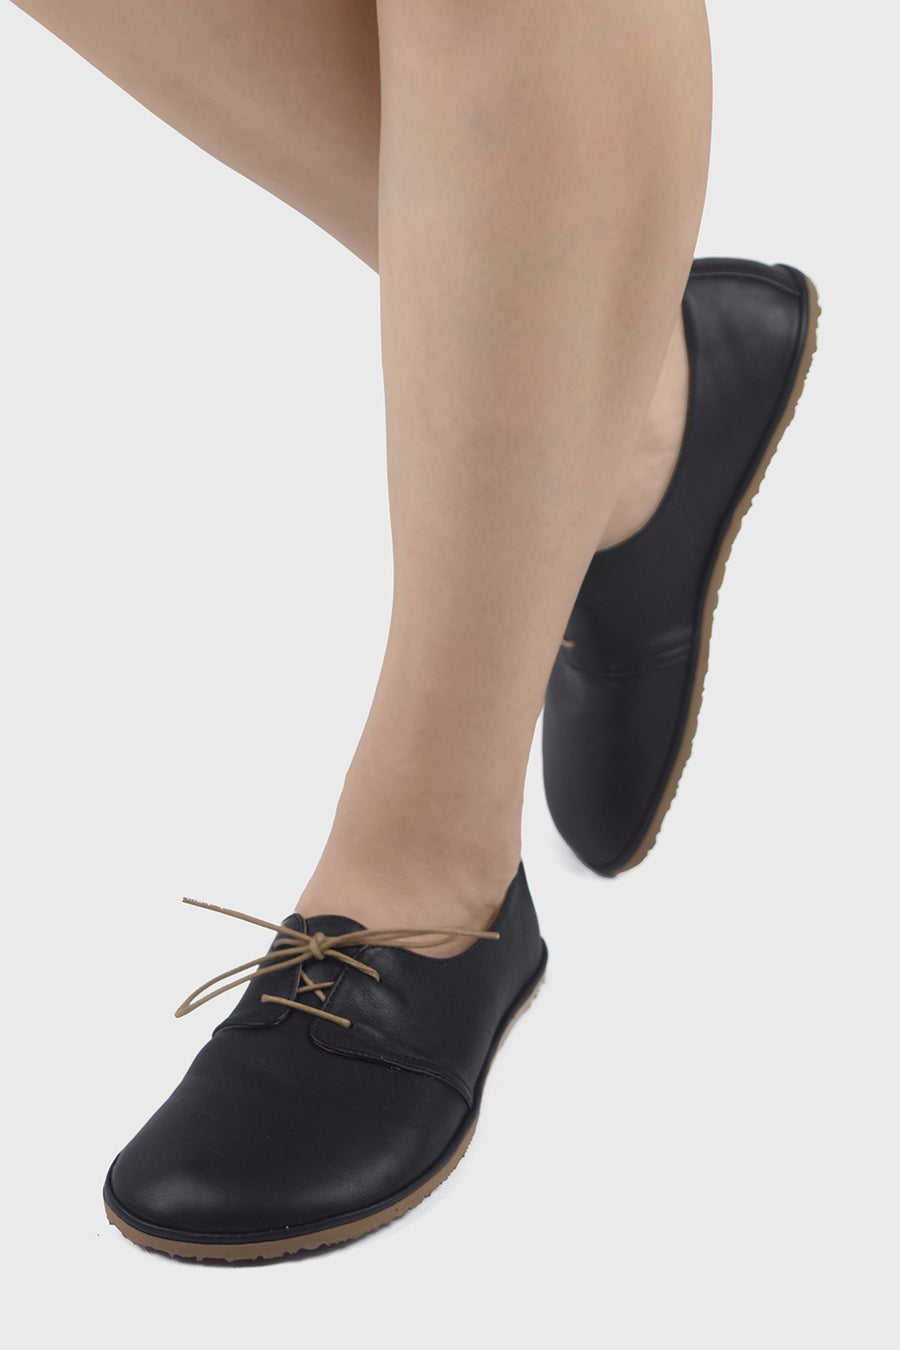 Image of Bliss flats in Matte Black